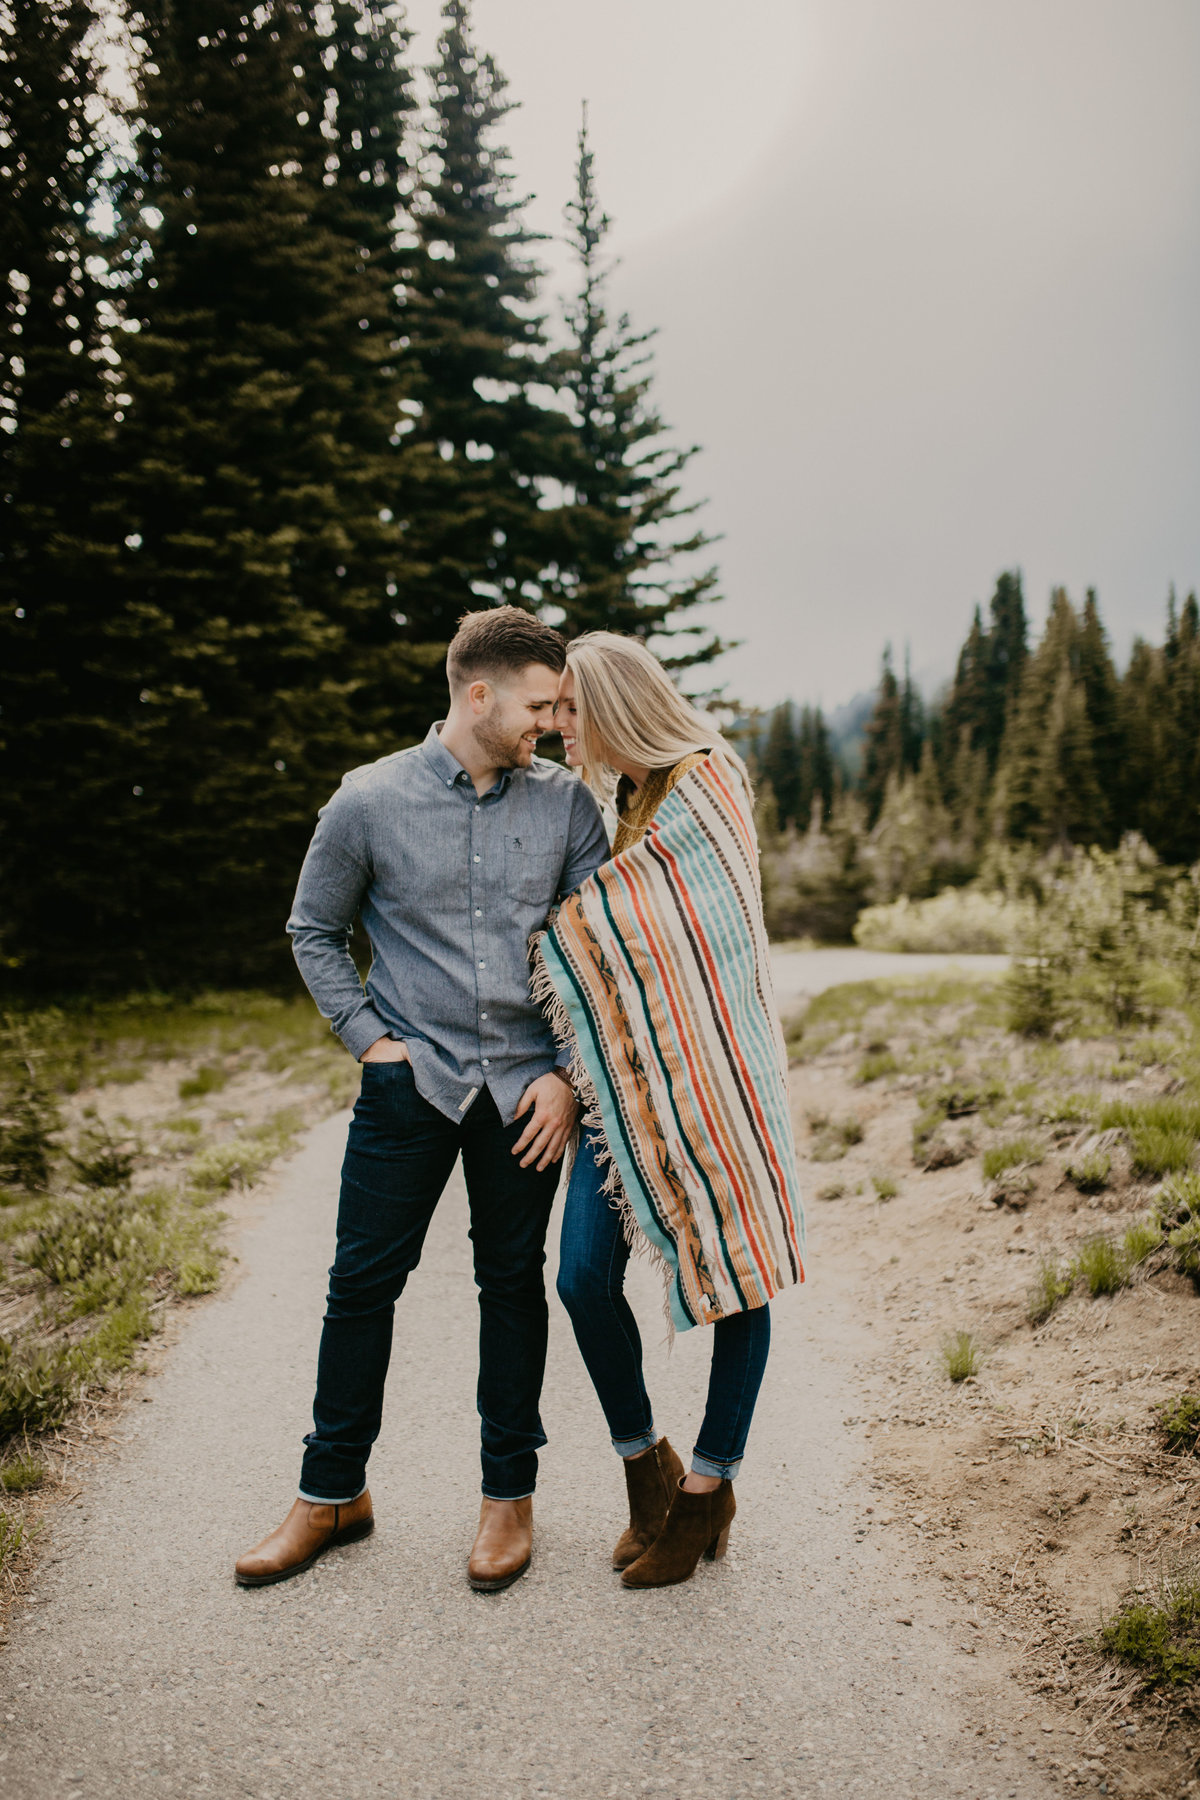 Marnie_Cornell_Photography_Engagement_Mount_Rainier_RK-76